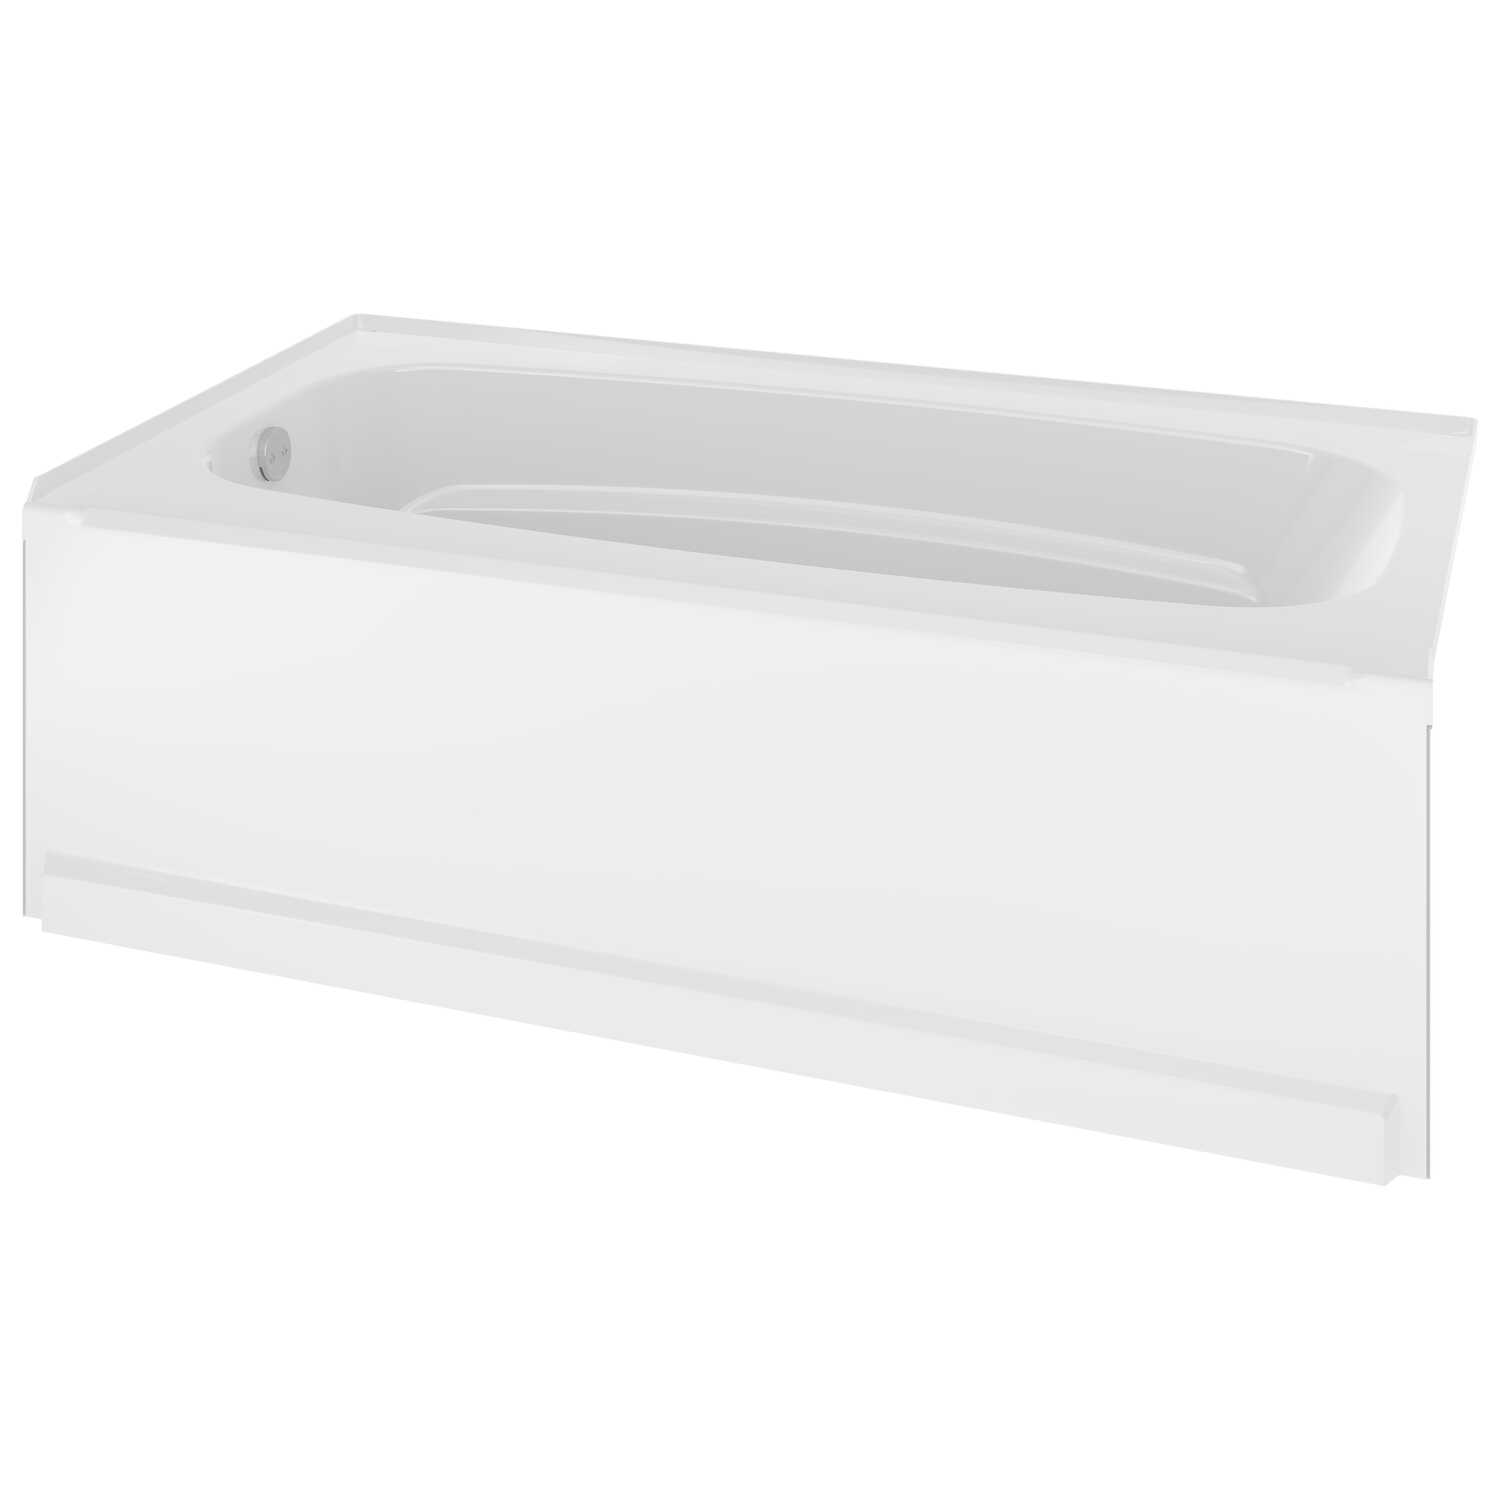 Delta Bathing System  Classic  White  One Piece  Left Hand Drain  Rectangle  Bathtub